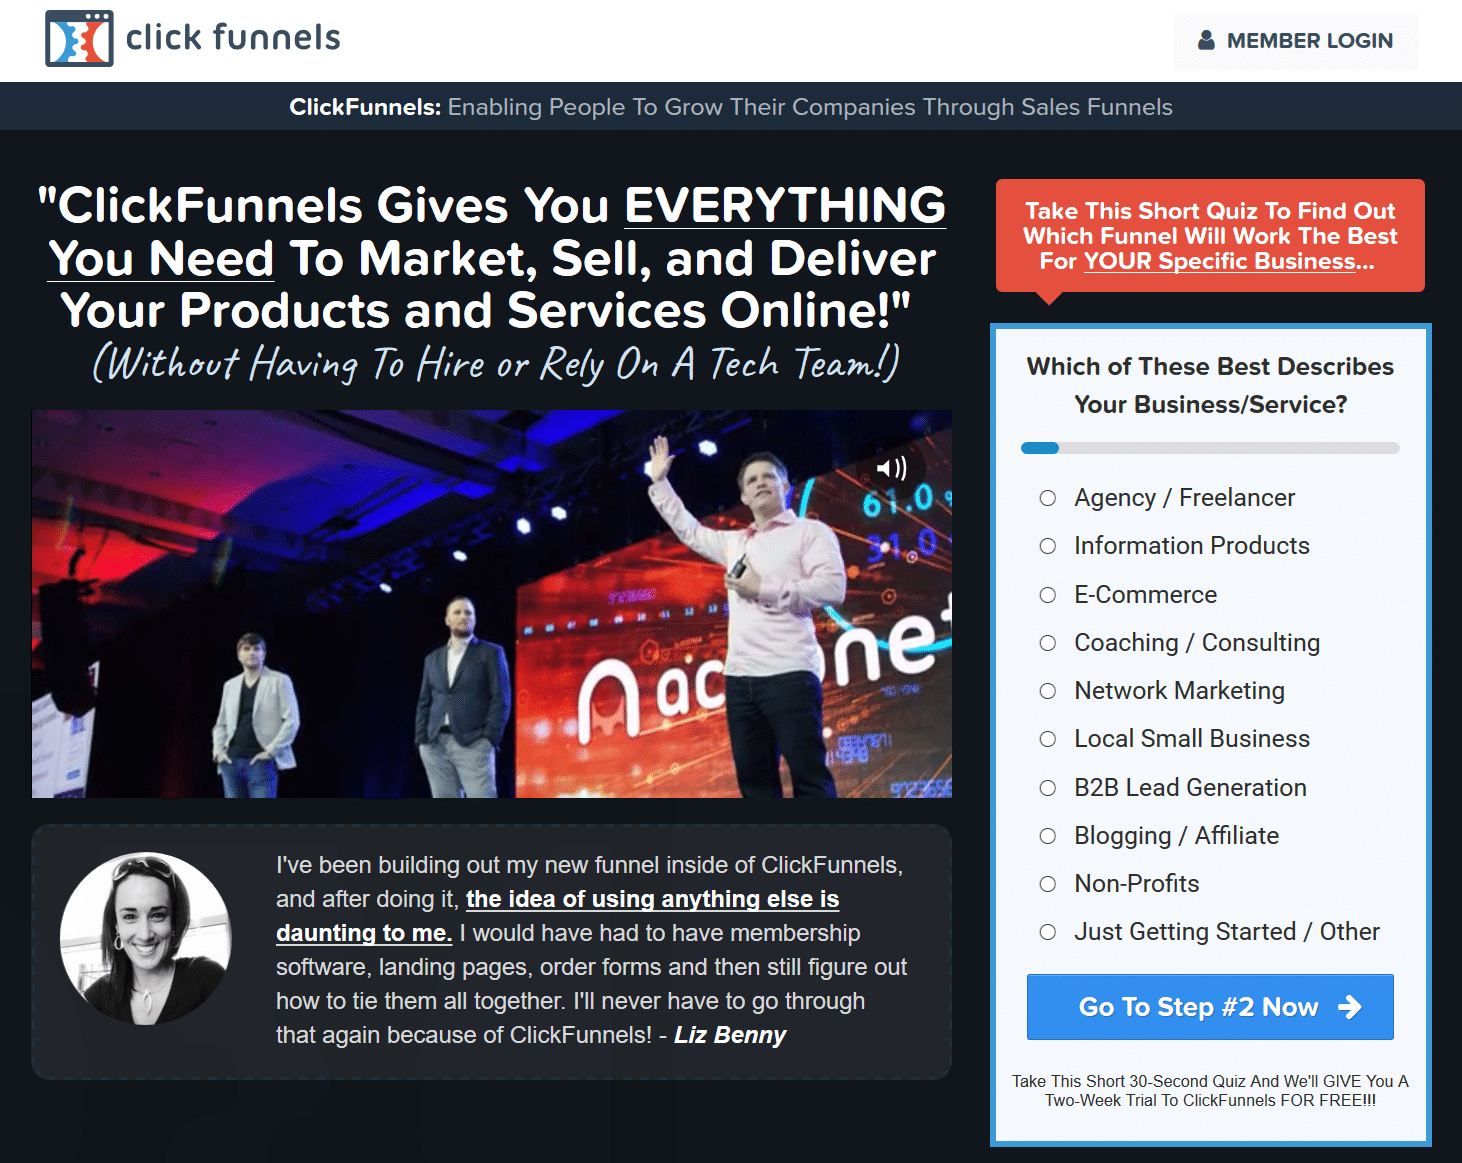 How Hard Is To To Make Money With Clickfunnels